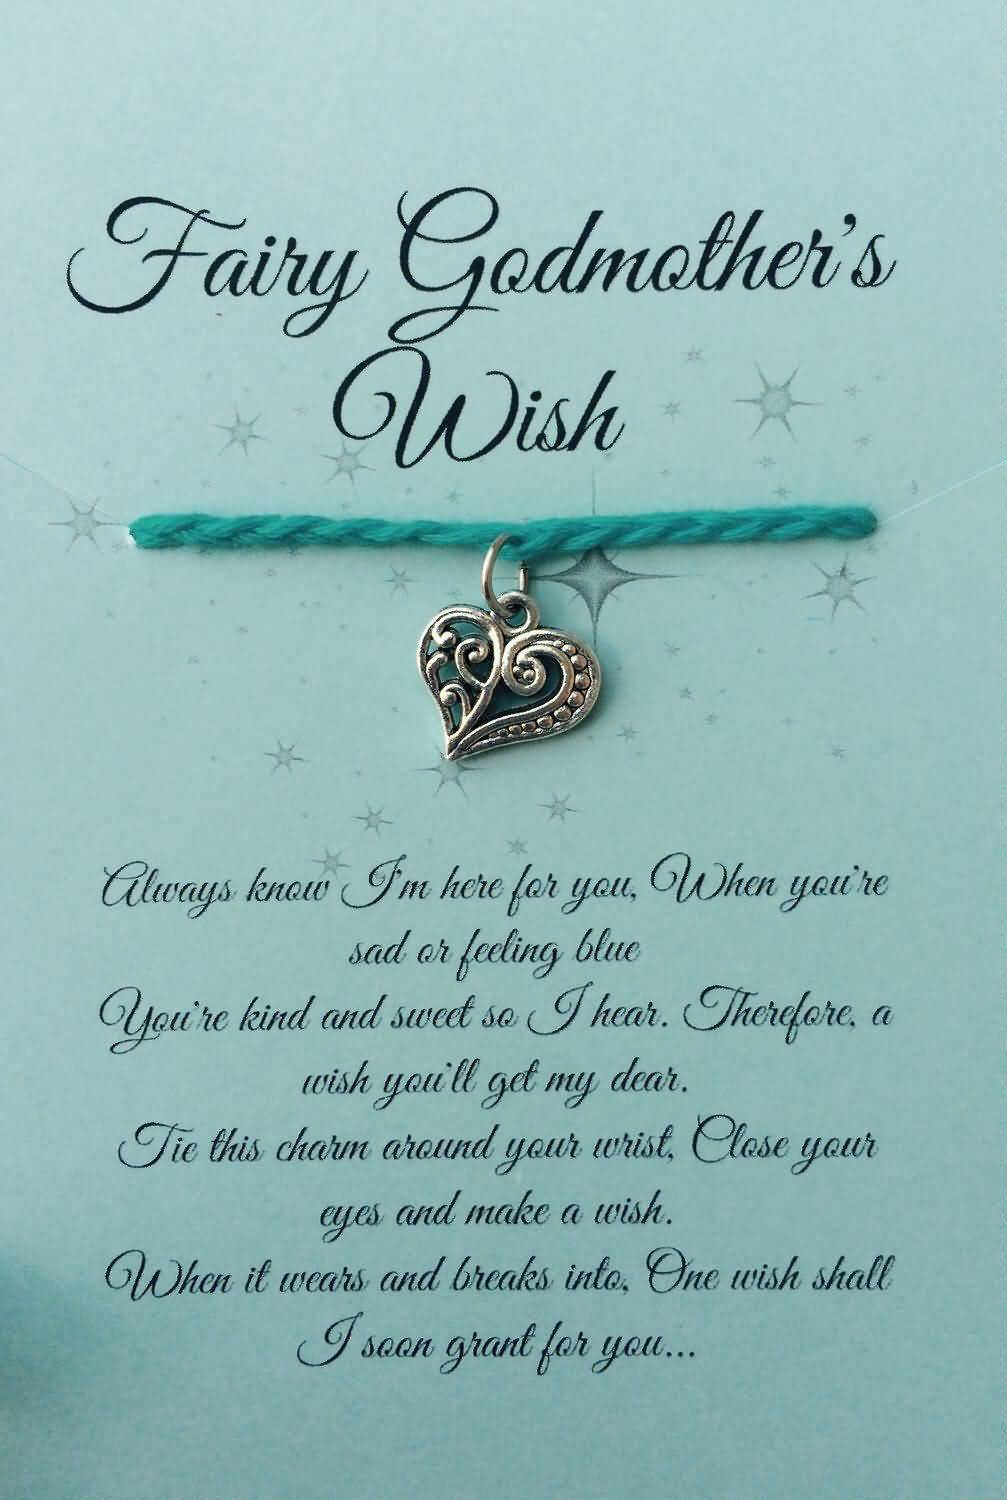 Fairy Godmother wish and blessing